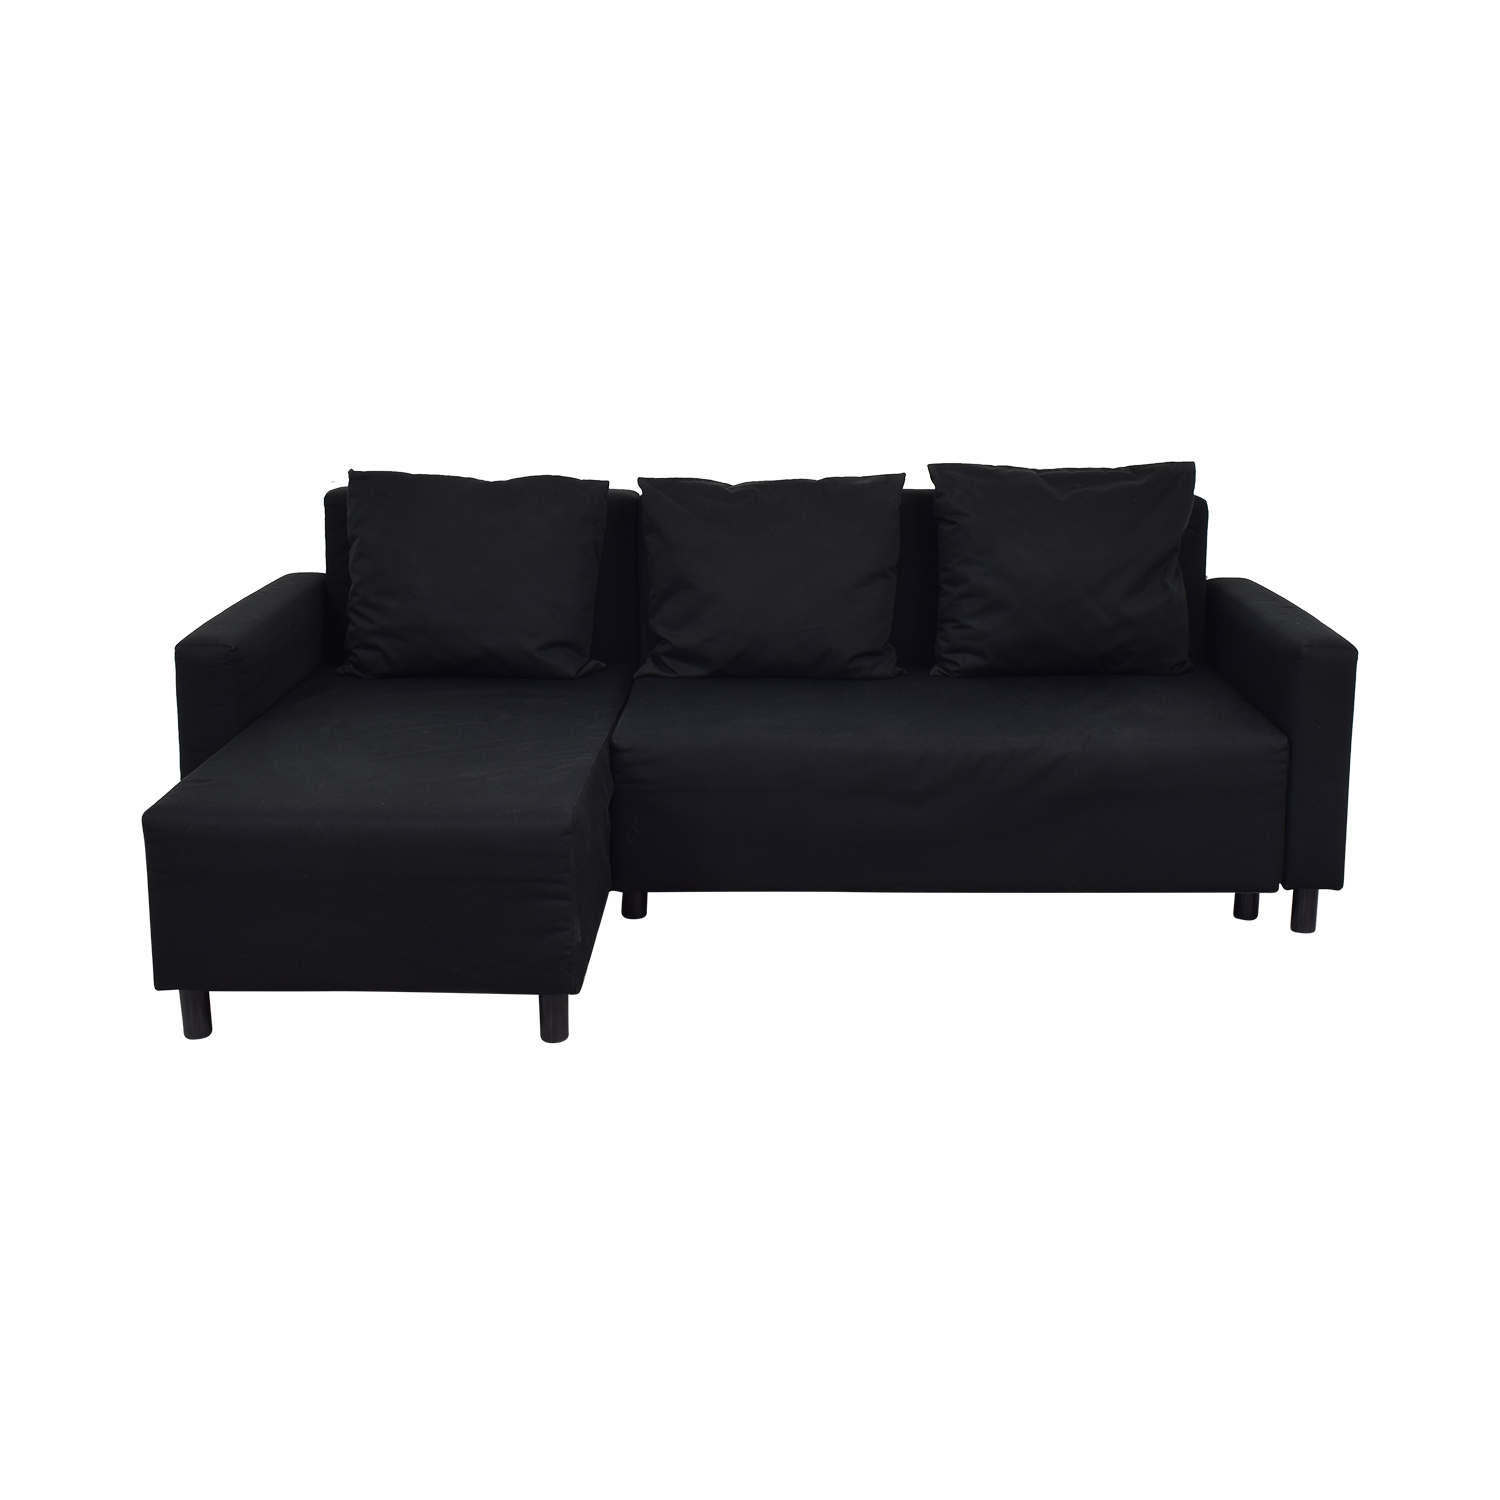 48 Off Ikea Lugnvik Sofa Bed